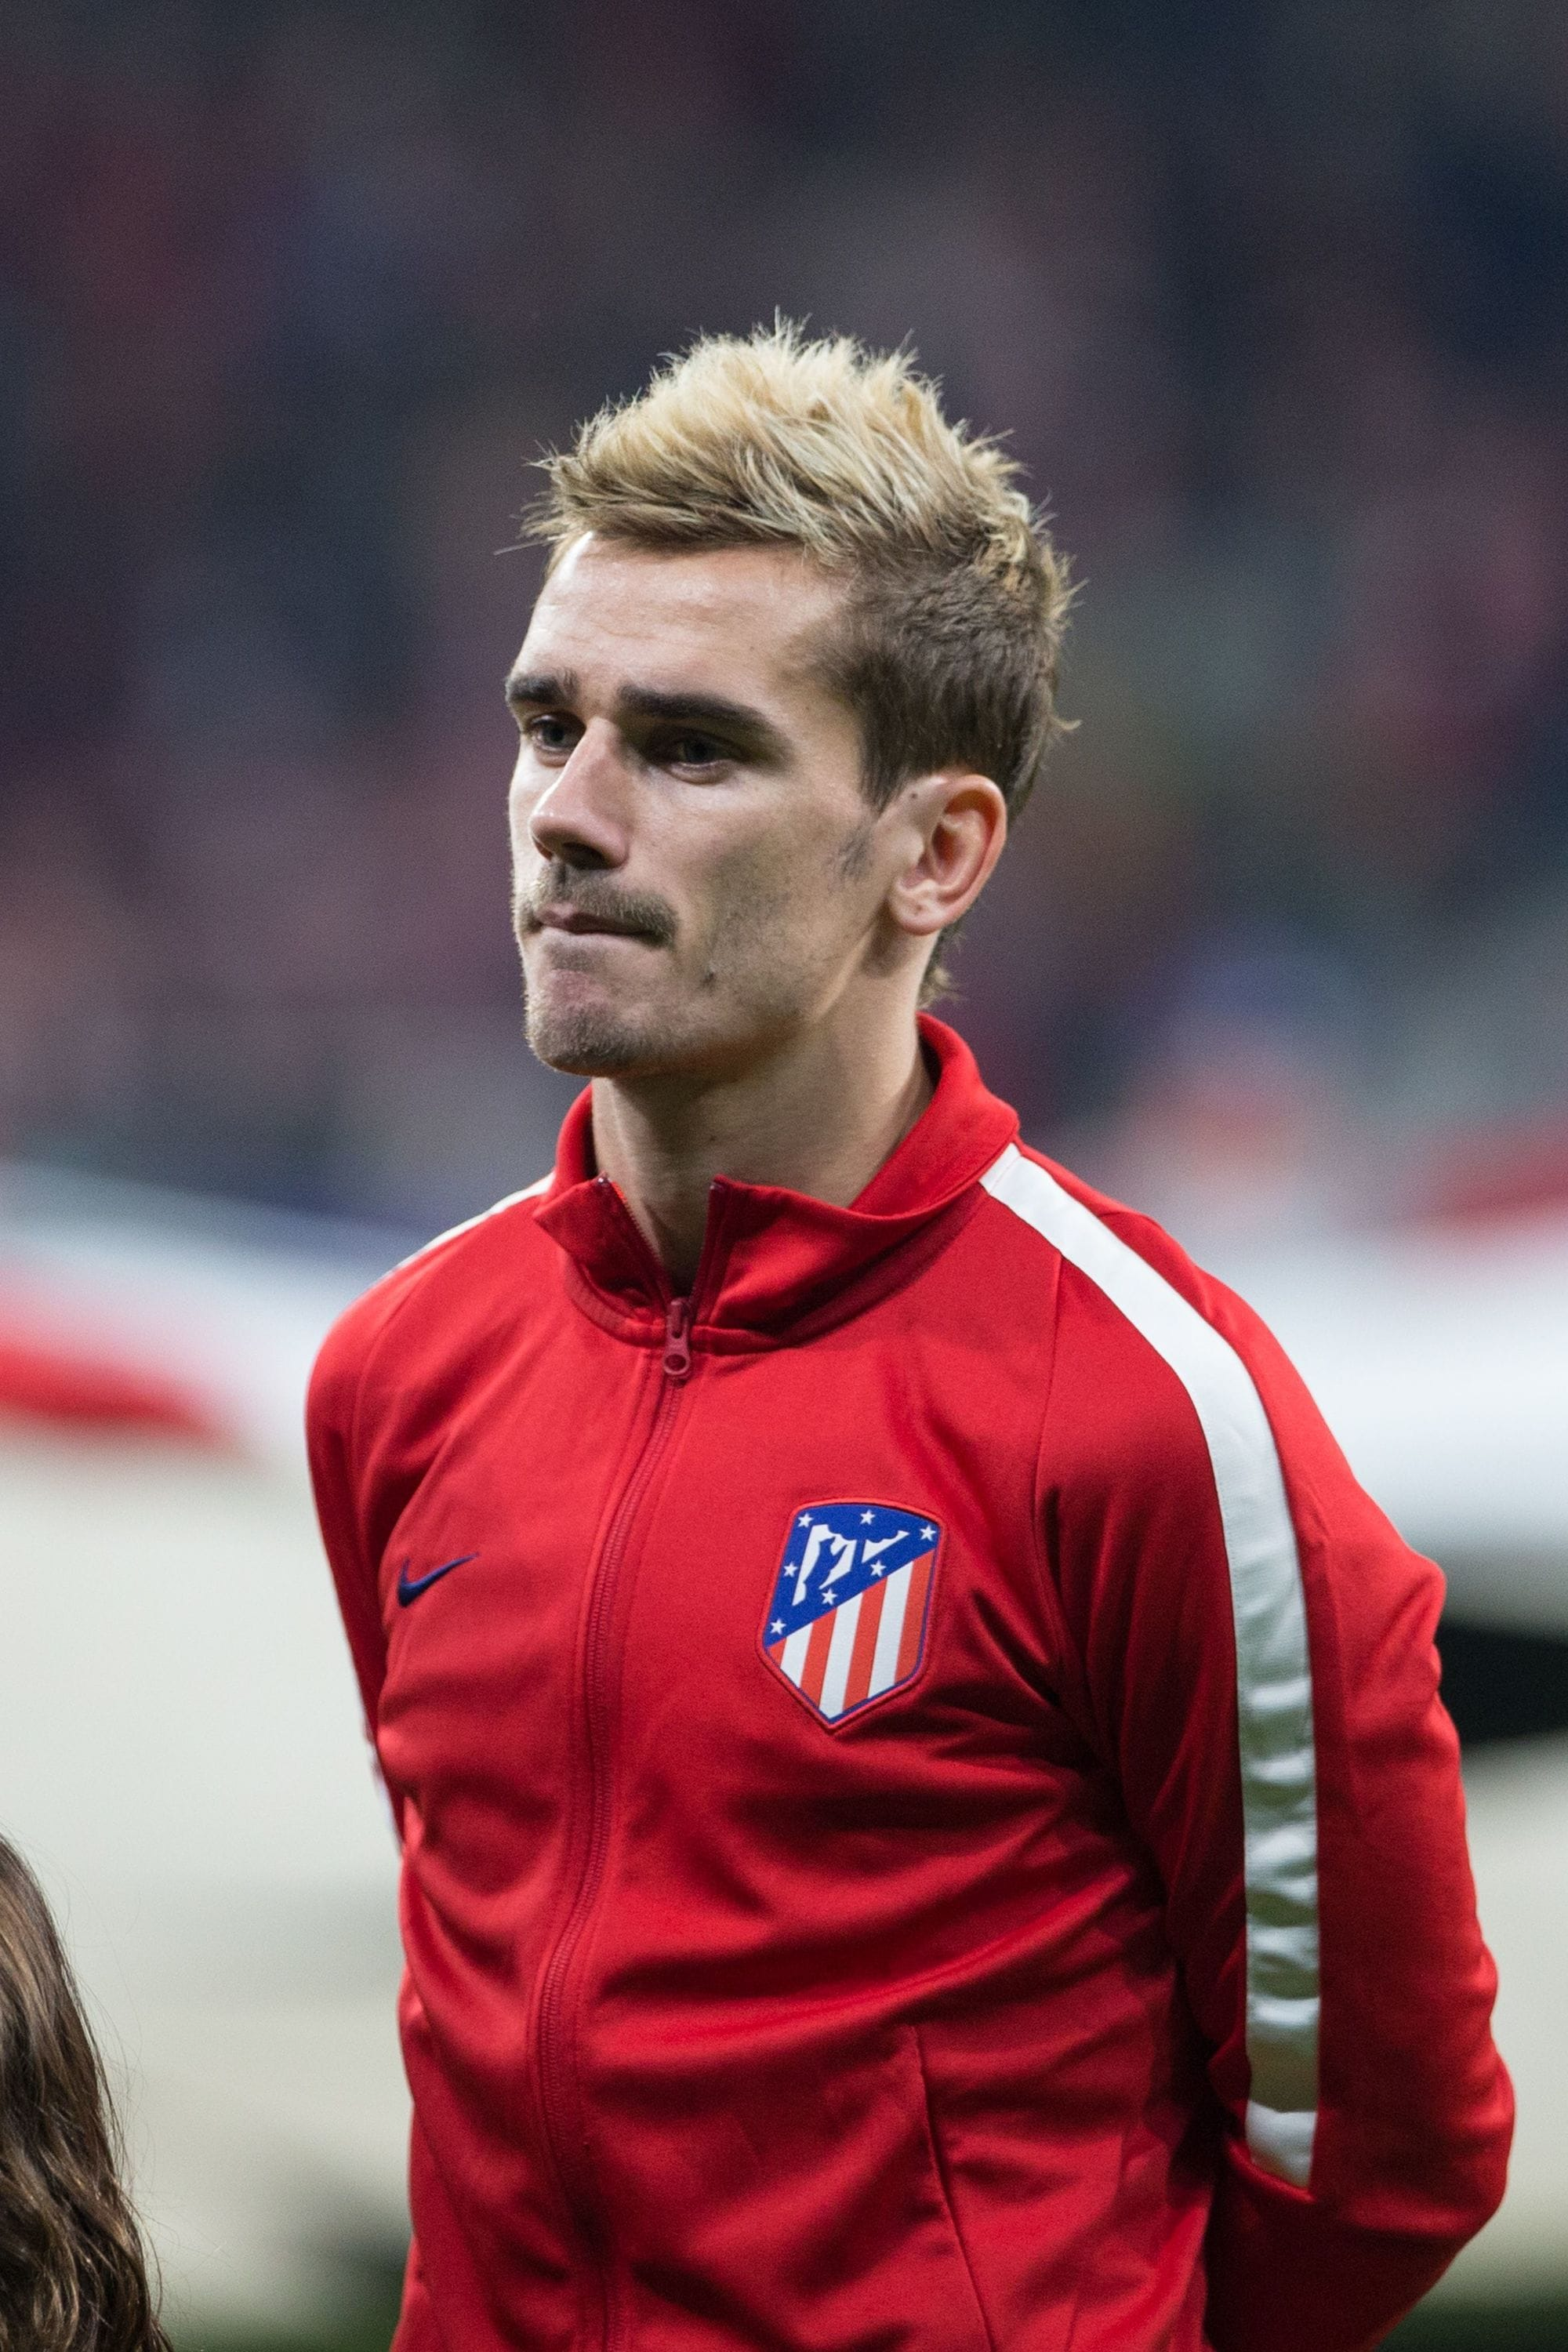 french footballer Antoine Griezmann with blonde spiky hair standing on the pitch